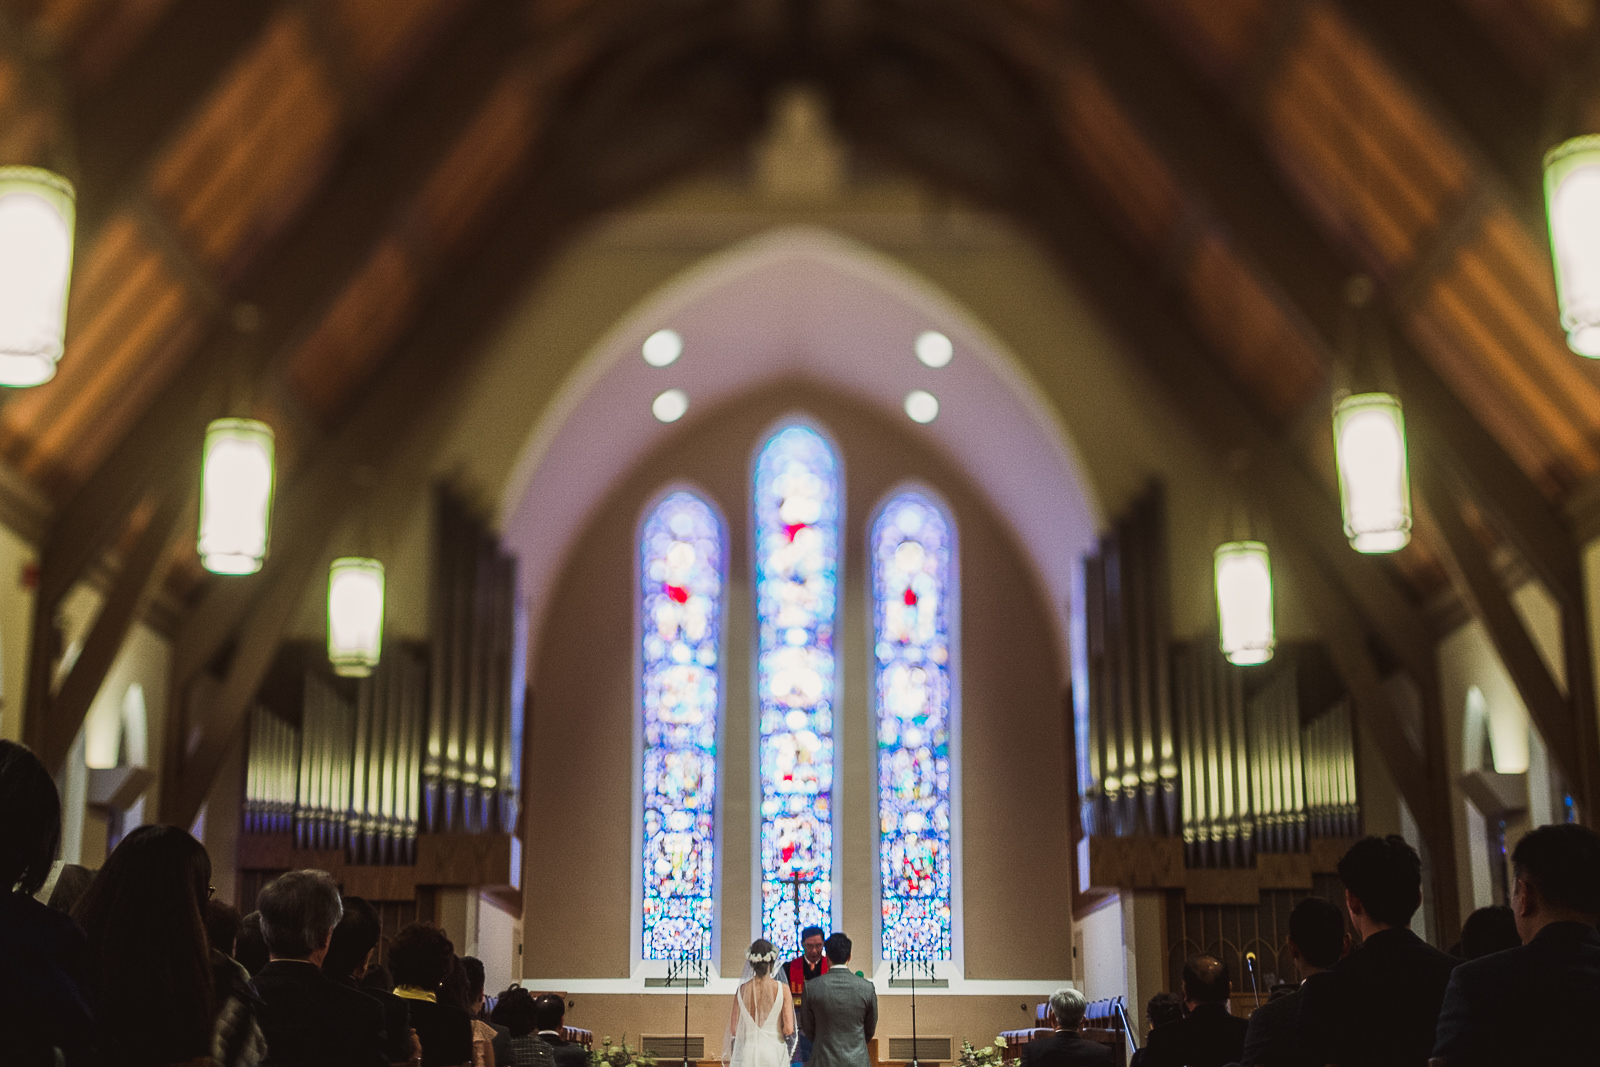 28 church wedding photos - Rebecca + Doha // Wedding Photos at Room 1520 Chicago